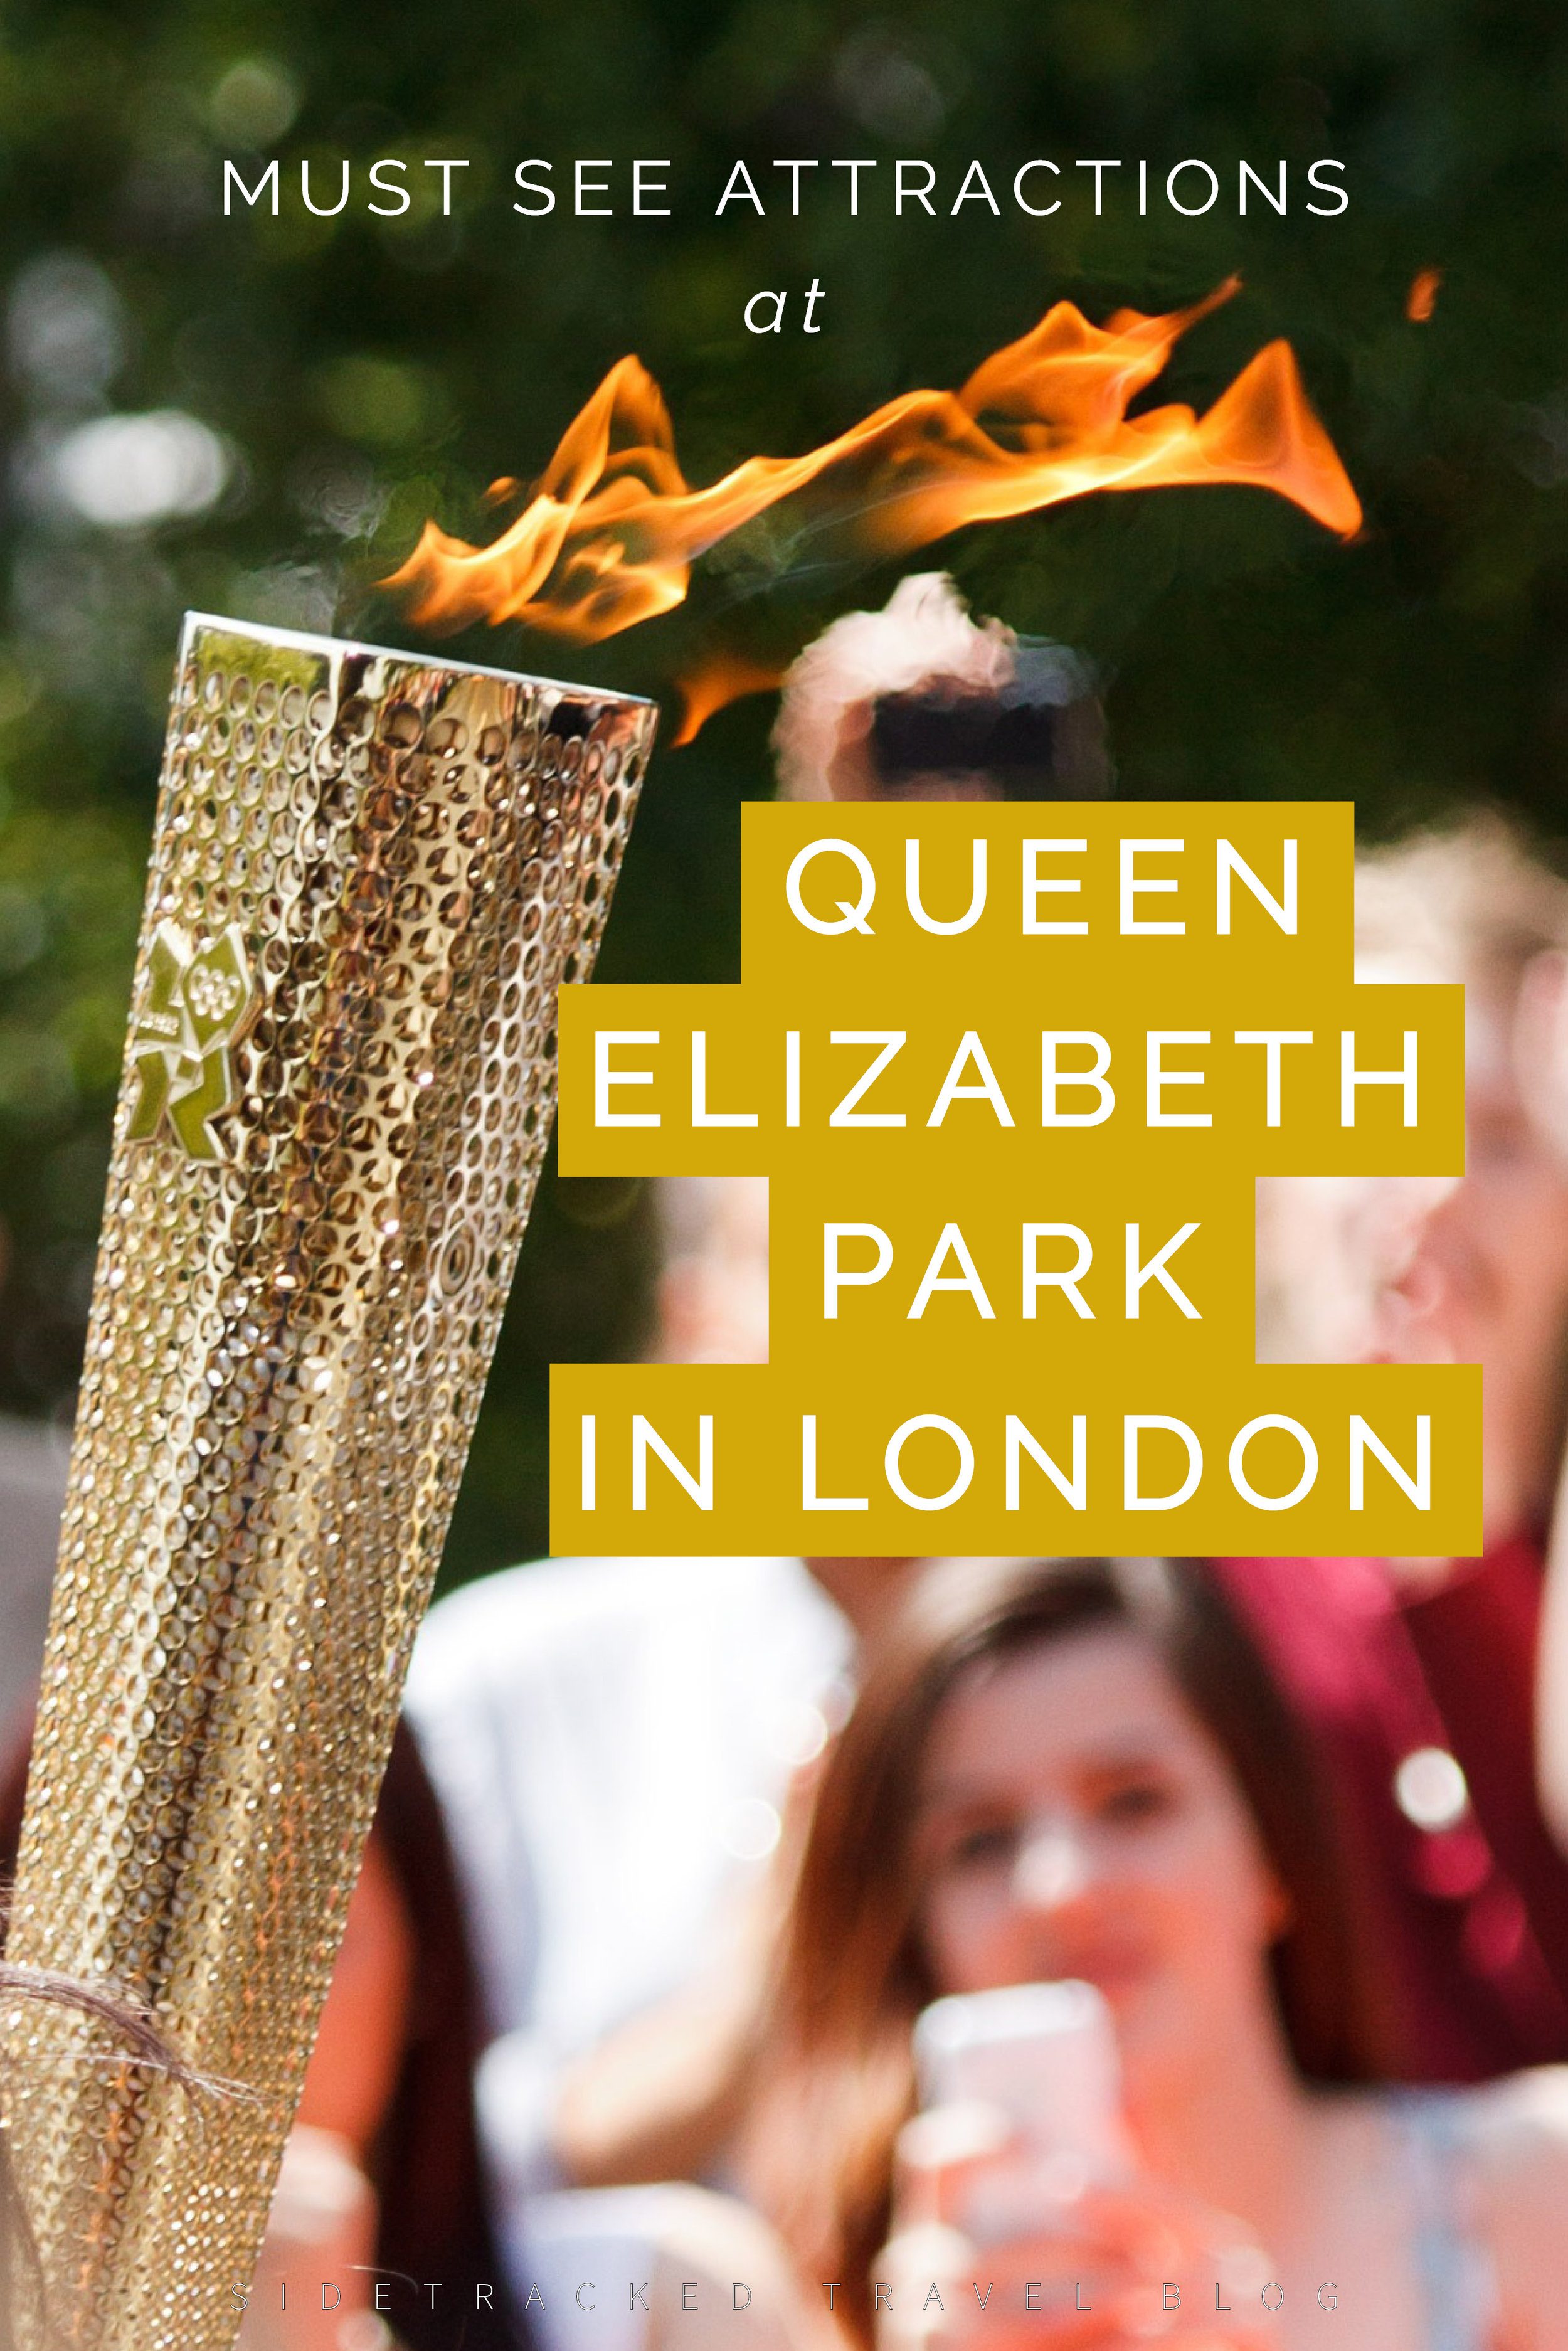 Seven years after hosting the 2012 Olympics, Queen Elizabeth Olympic Park continues to thrive as its facilities have been converted for public use after the games, with attractions added to entice people to visit. Here are some of the must see attractions in Queen Elizabeth Olympic Park!